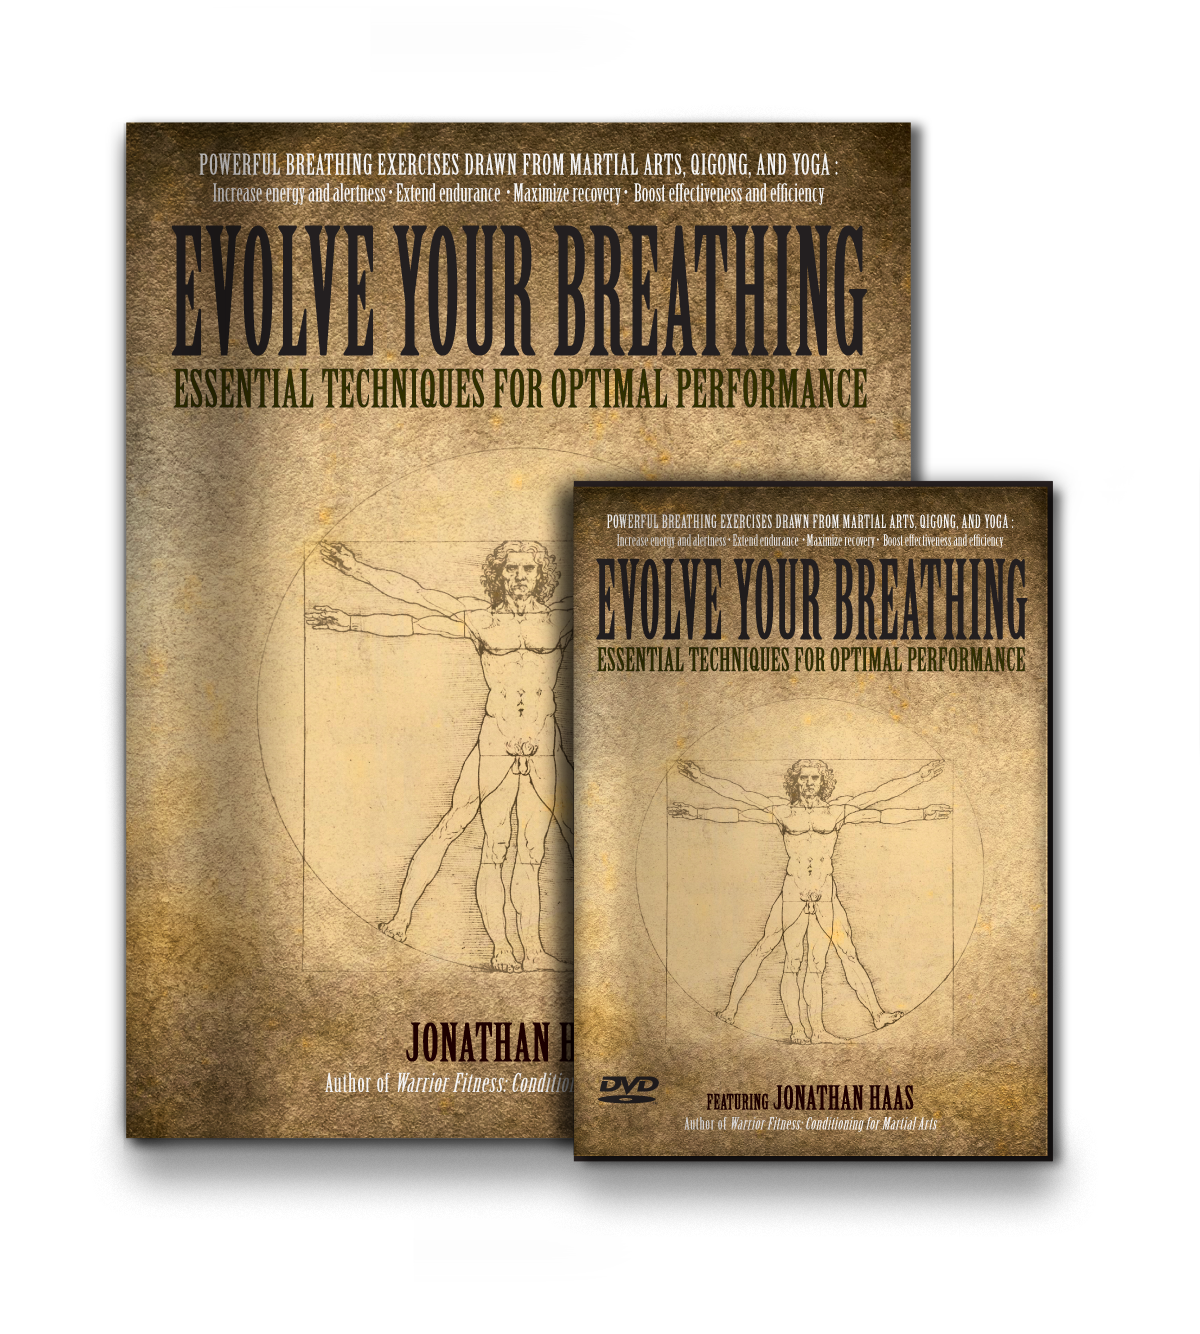 Evolve your breathing